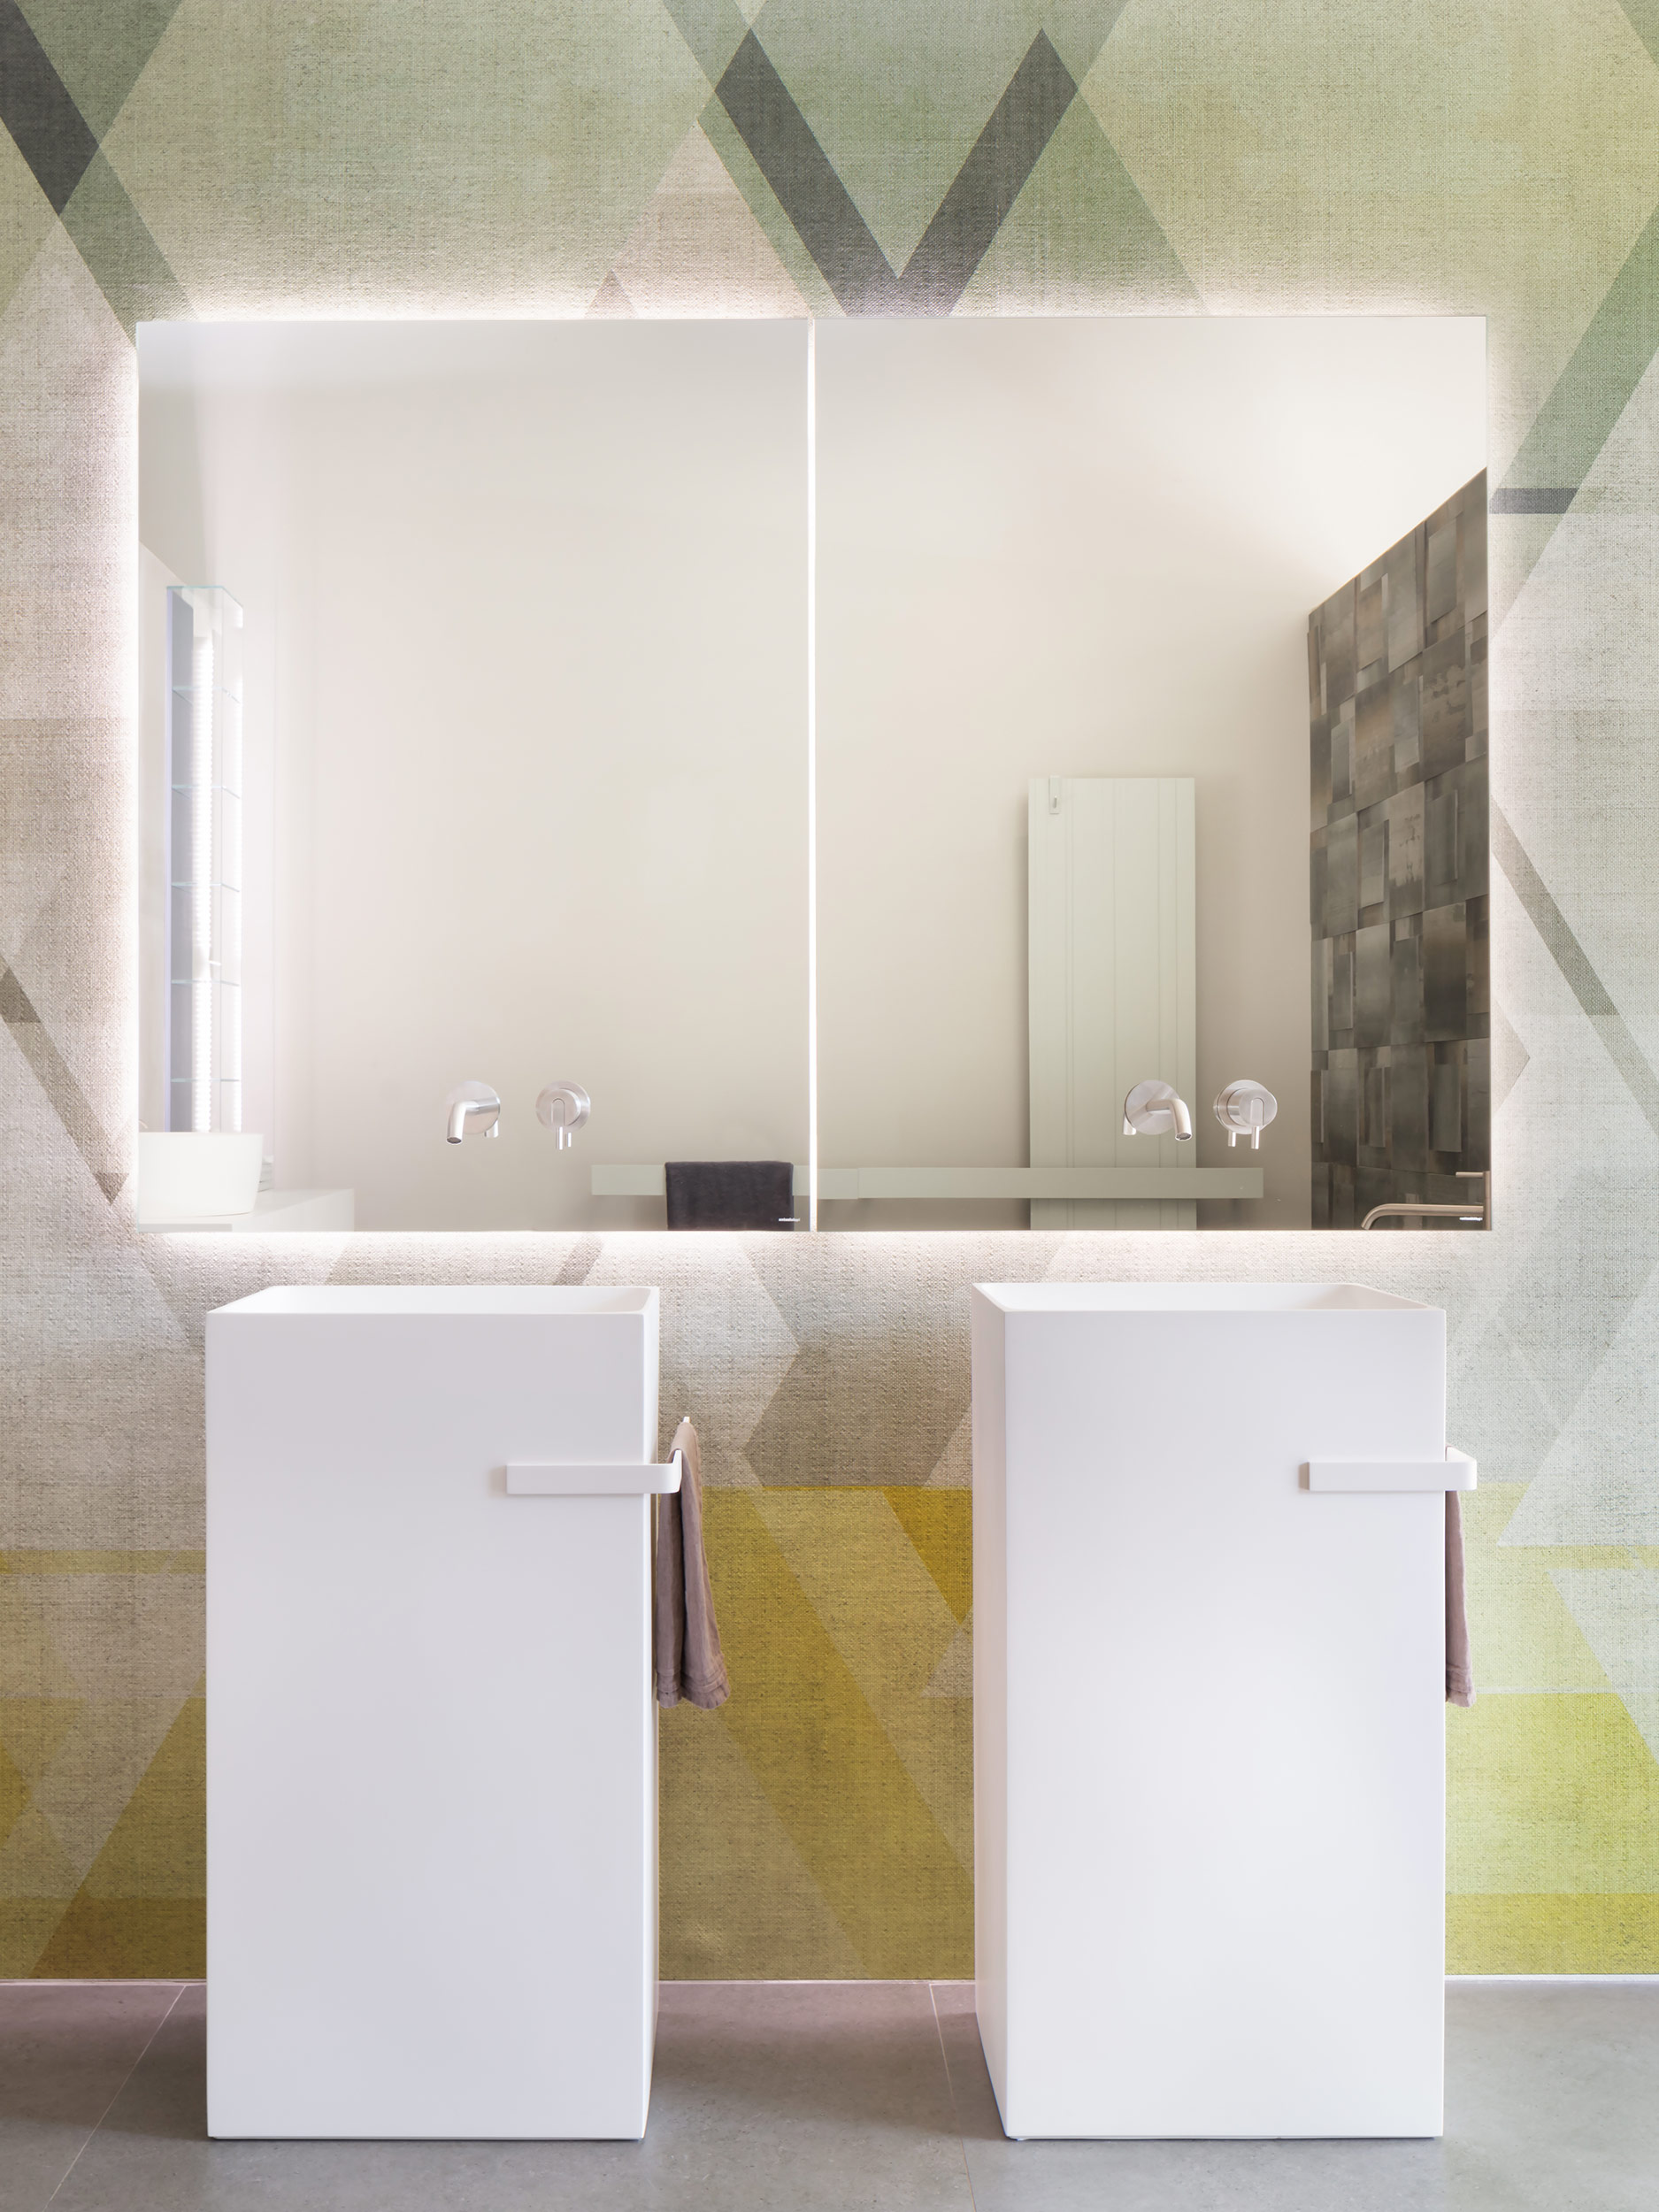 West One Bathrooms Notting Hill Showroom Westbourne Park Road 5a